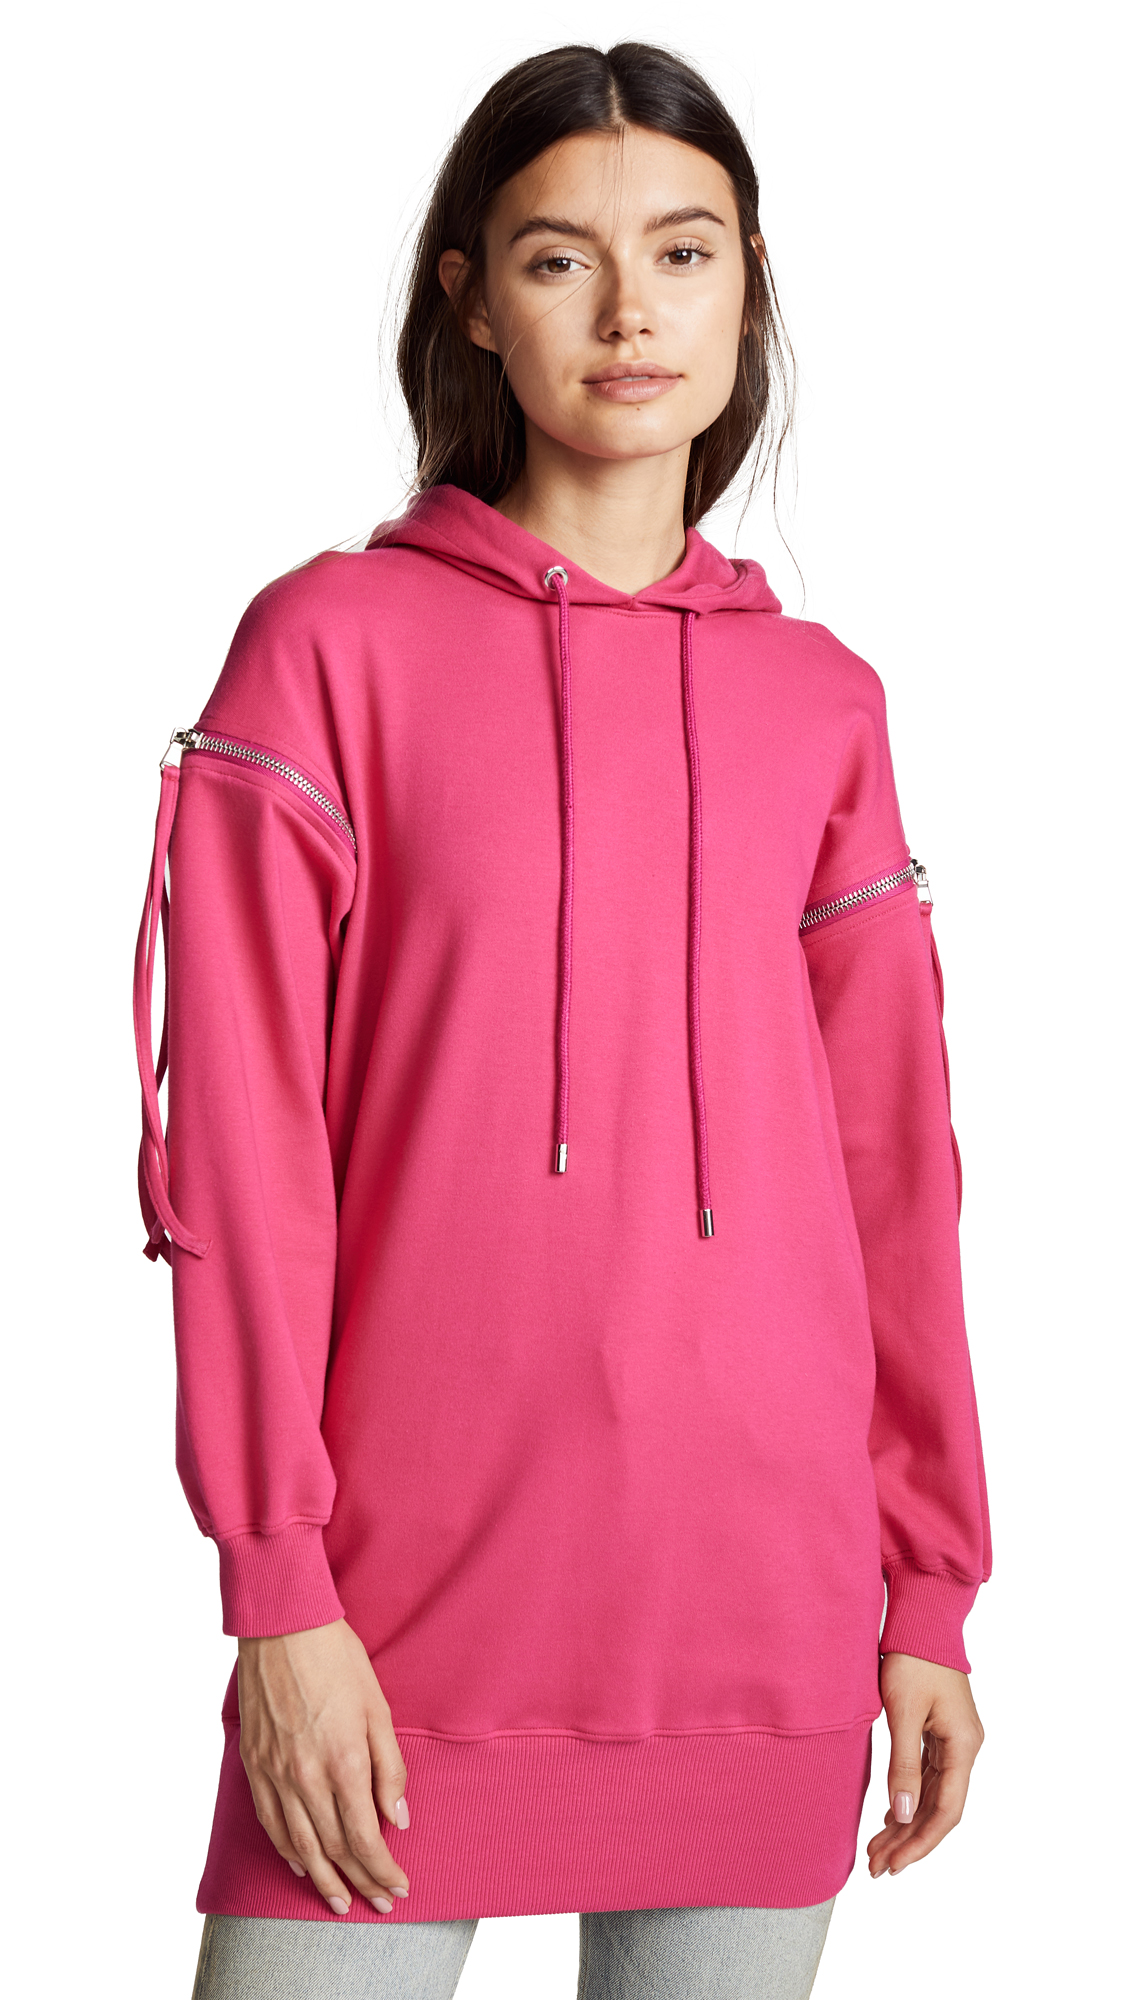 Moschino Hoodie Dress In Pink